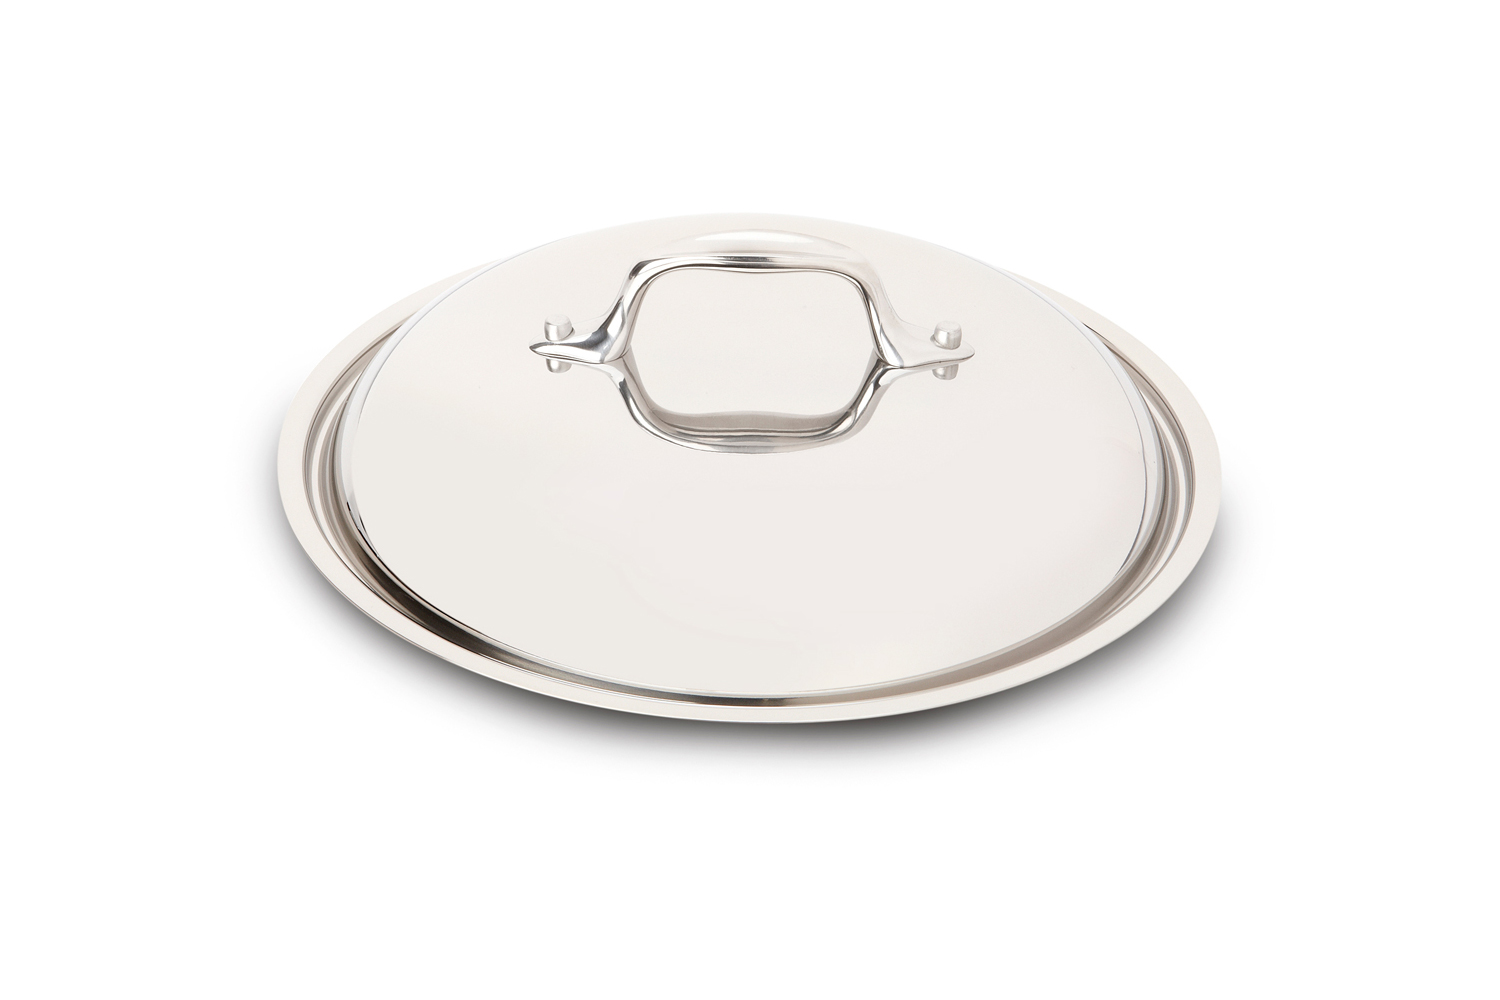 All-Clad Stainless Steel 10 inch Domed Lid